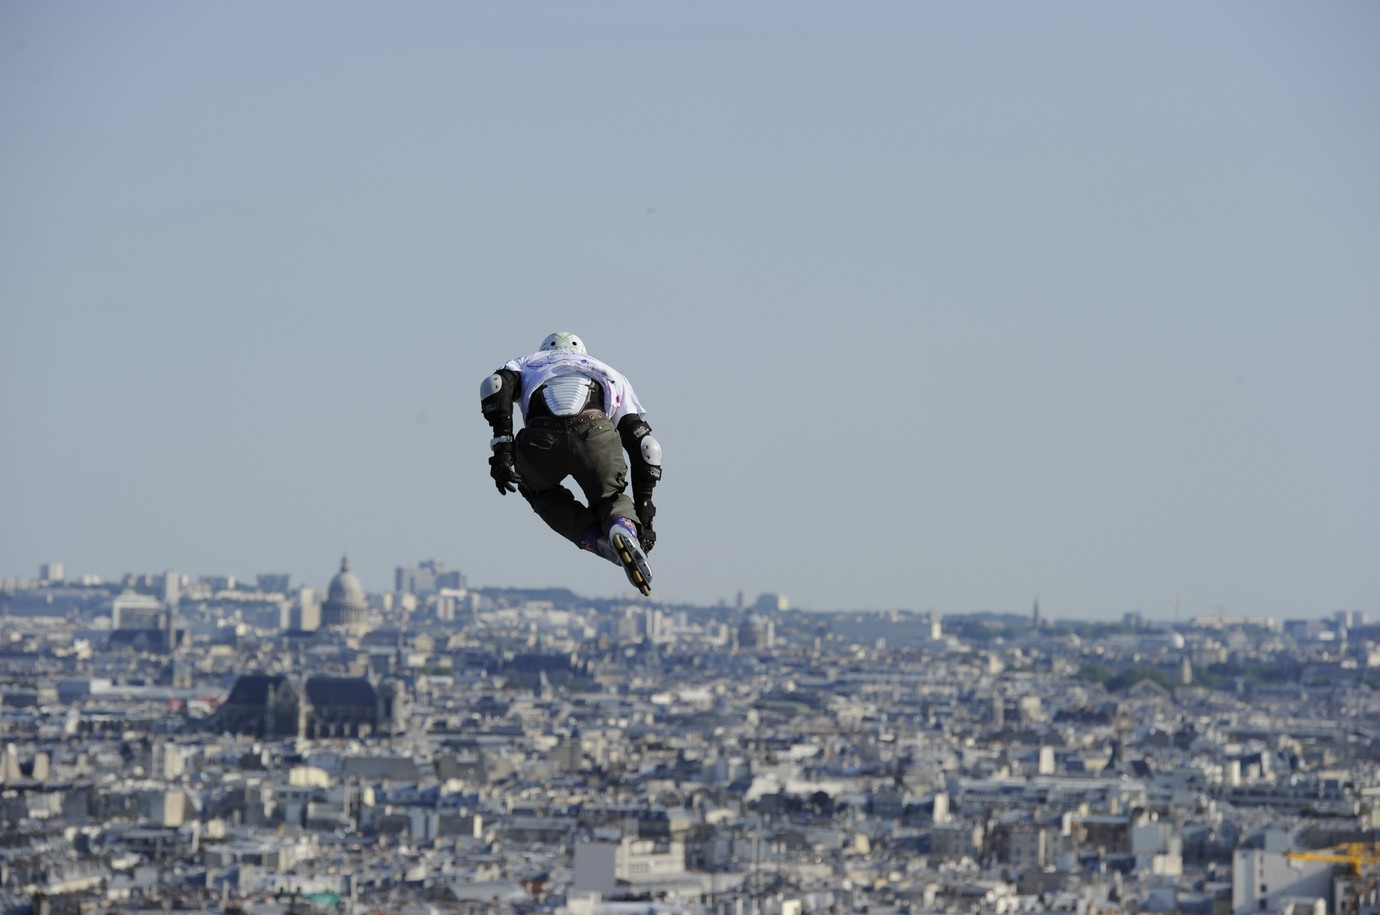 ta g khris record du monde de saut en longeur au sacr coeur paris. Black Bedroom Furniture Sets. Home Design Ideas